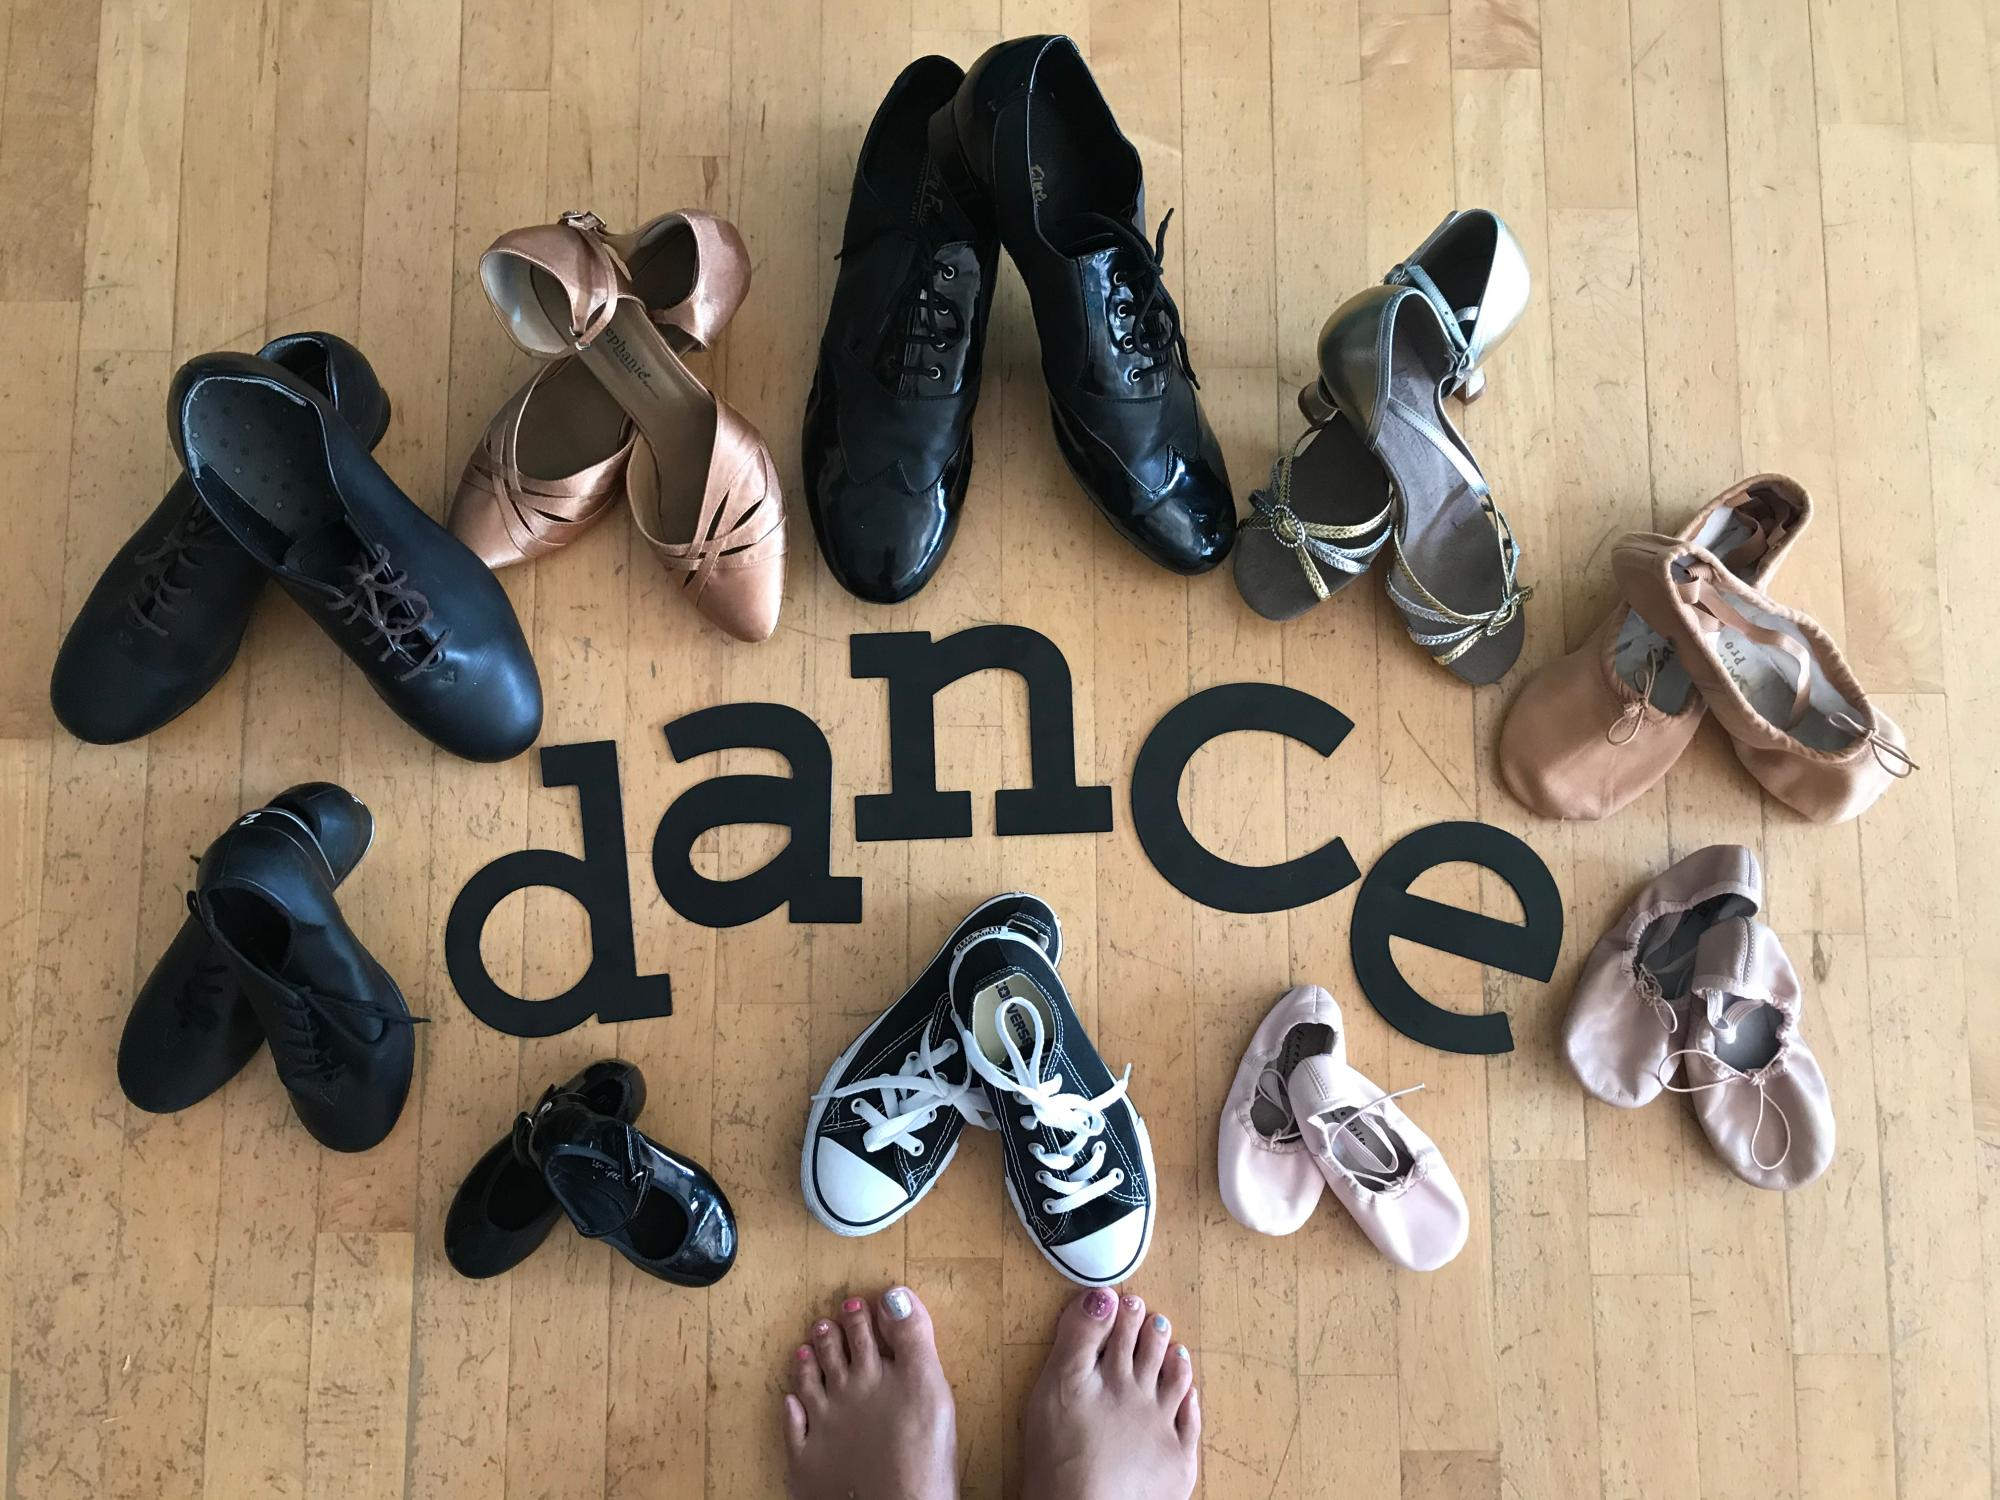 Two Left Feet® Dance online classes